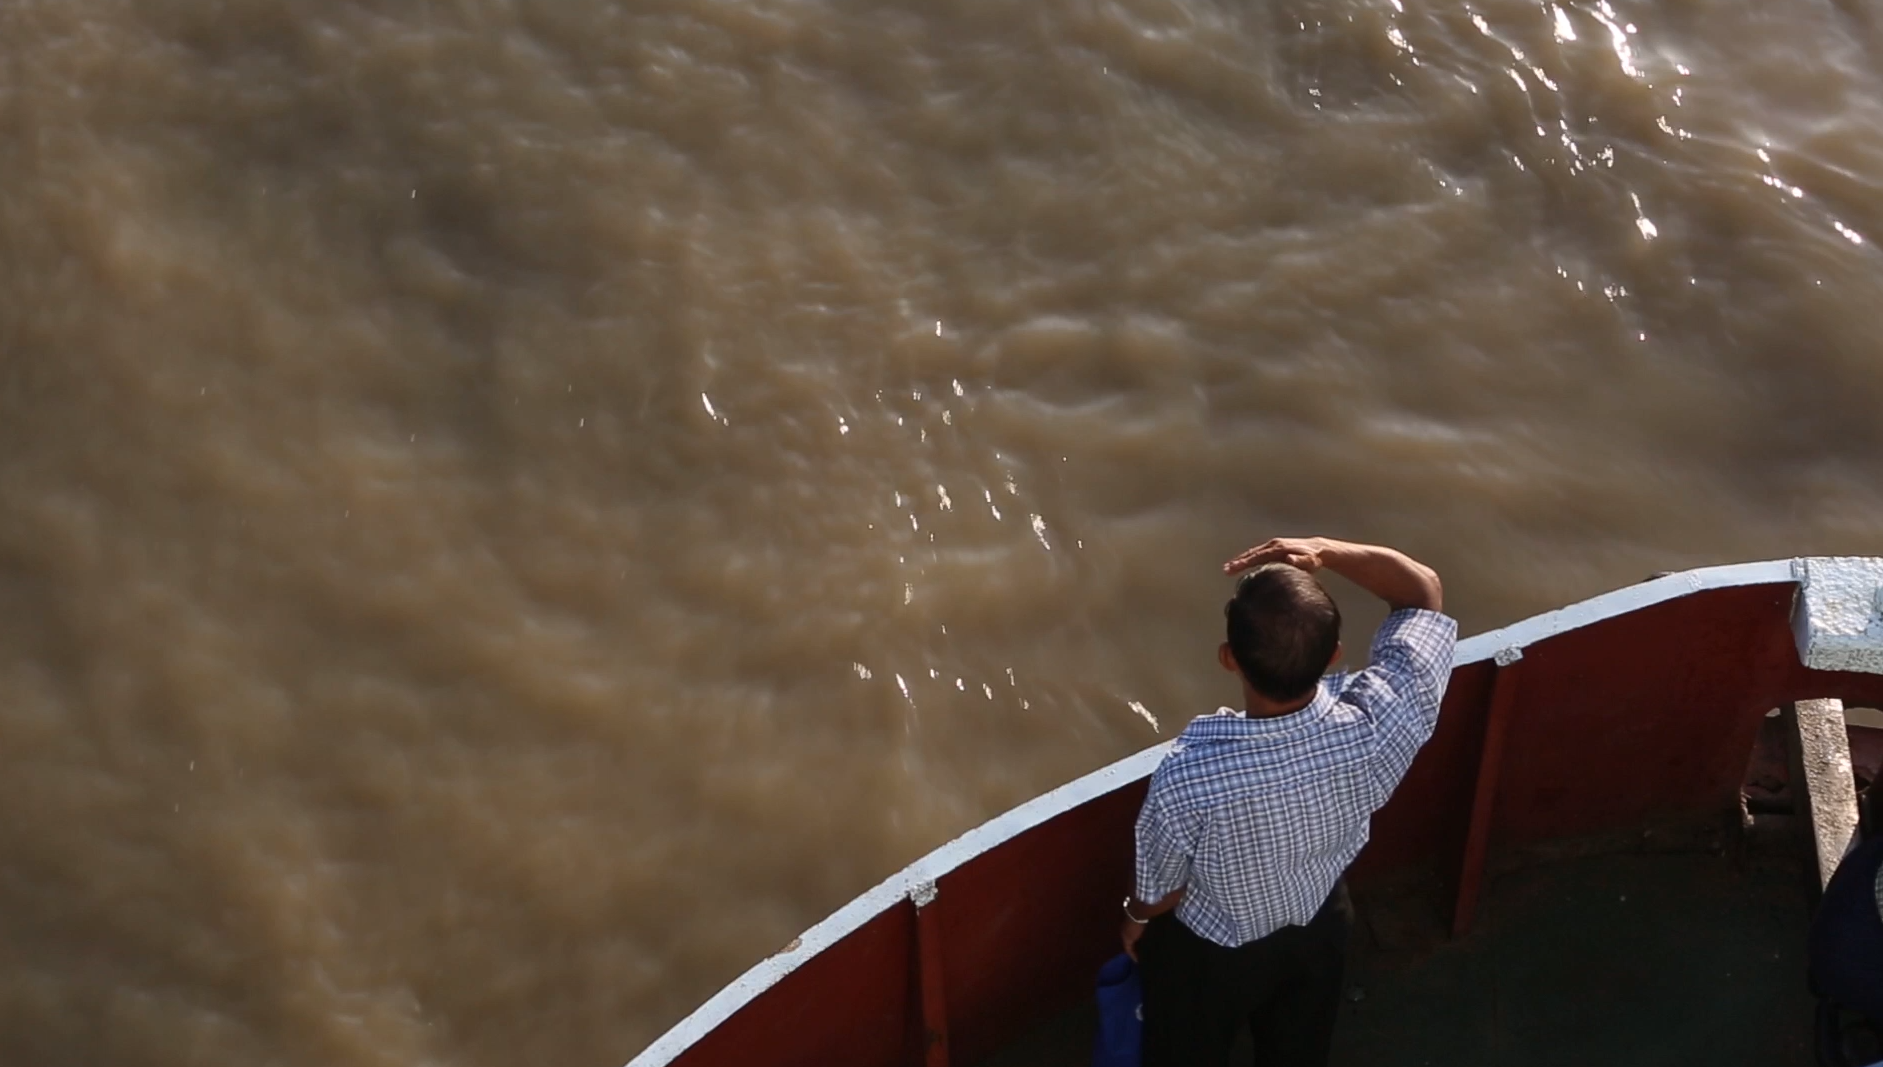 The Last Days of the Yangon Ferry in Burma